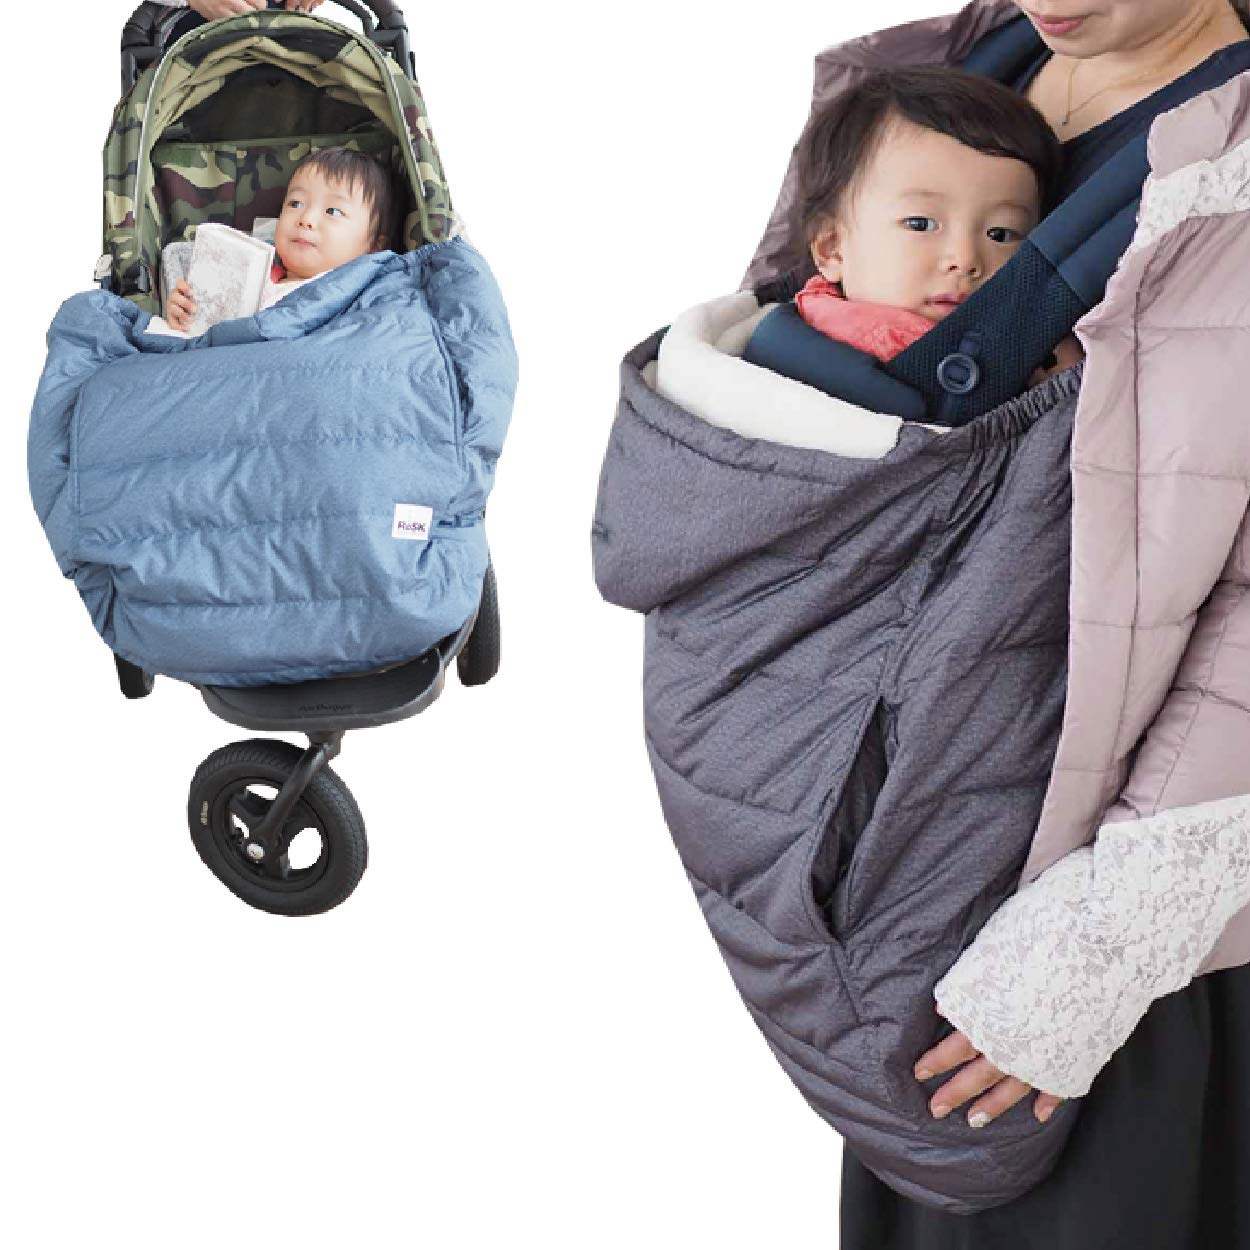 RoSK-Down Pouch 3way-Stroller,Carrier Cover and Car Seat Footmuff, Best for Freezing Winter Conditions Smokey Black